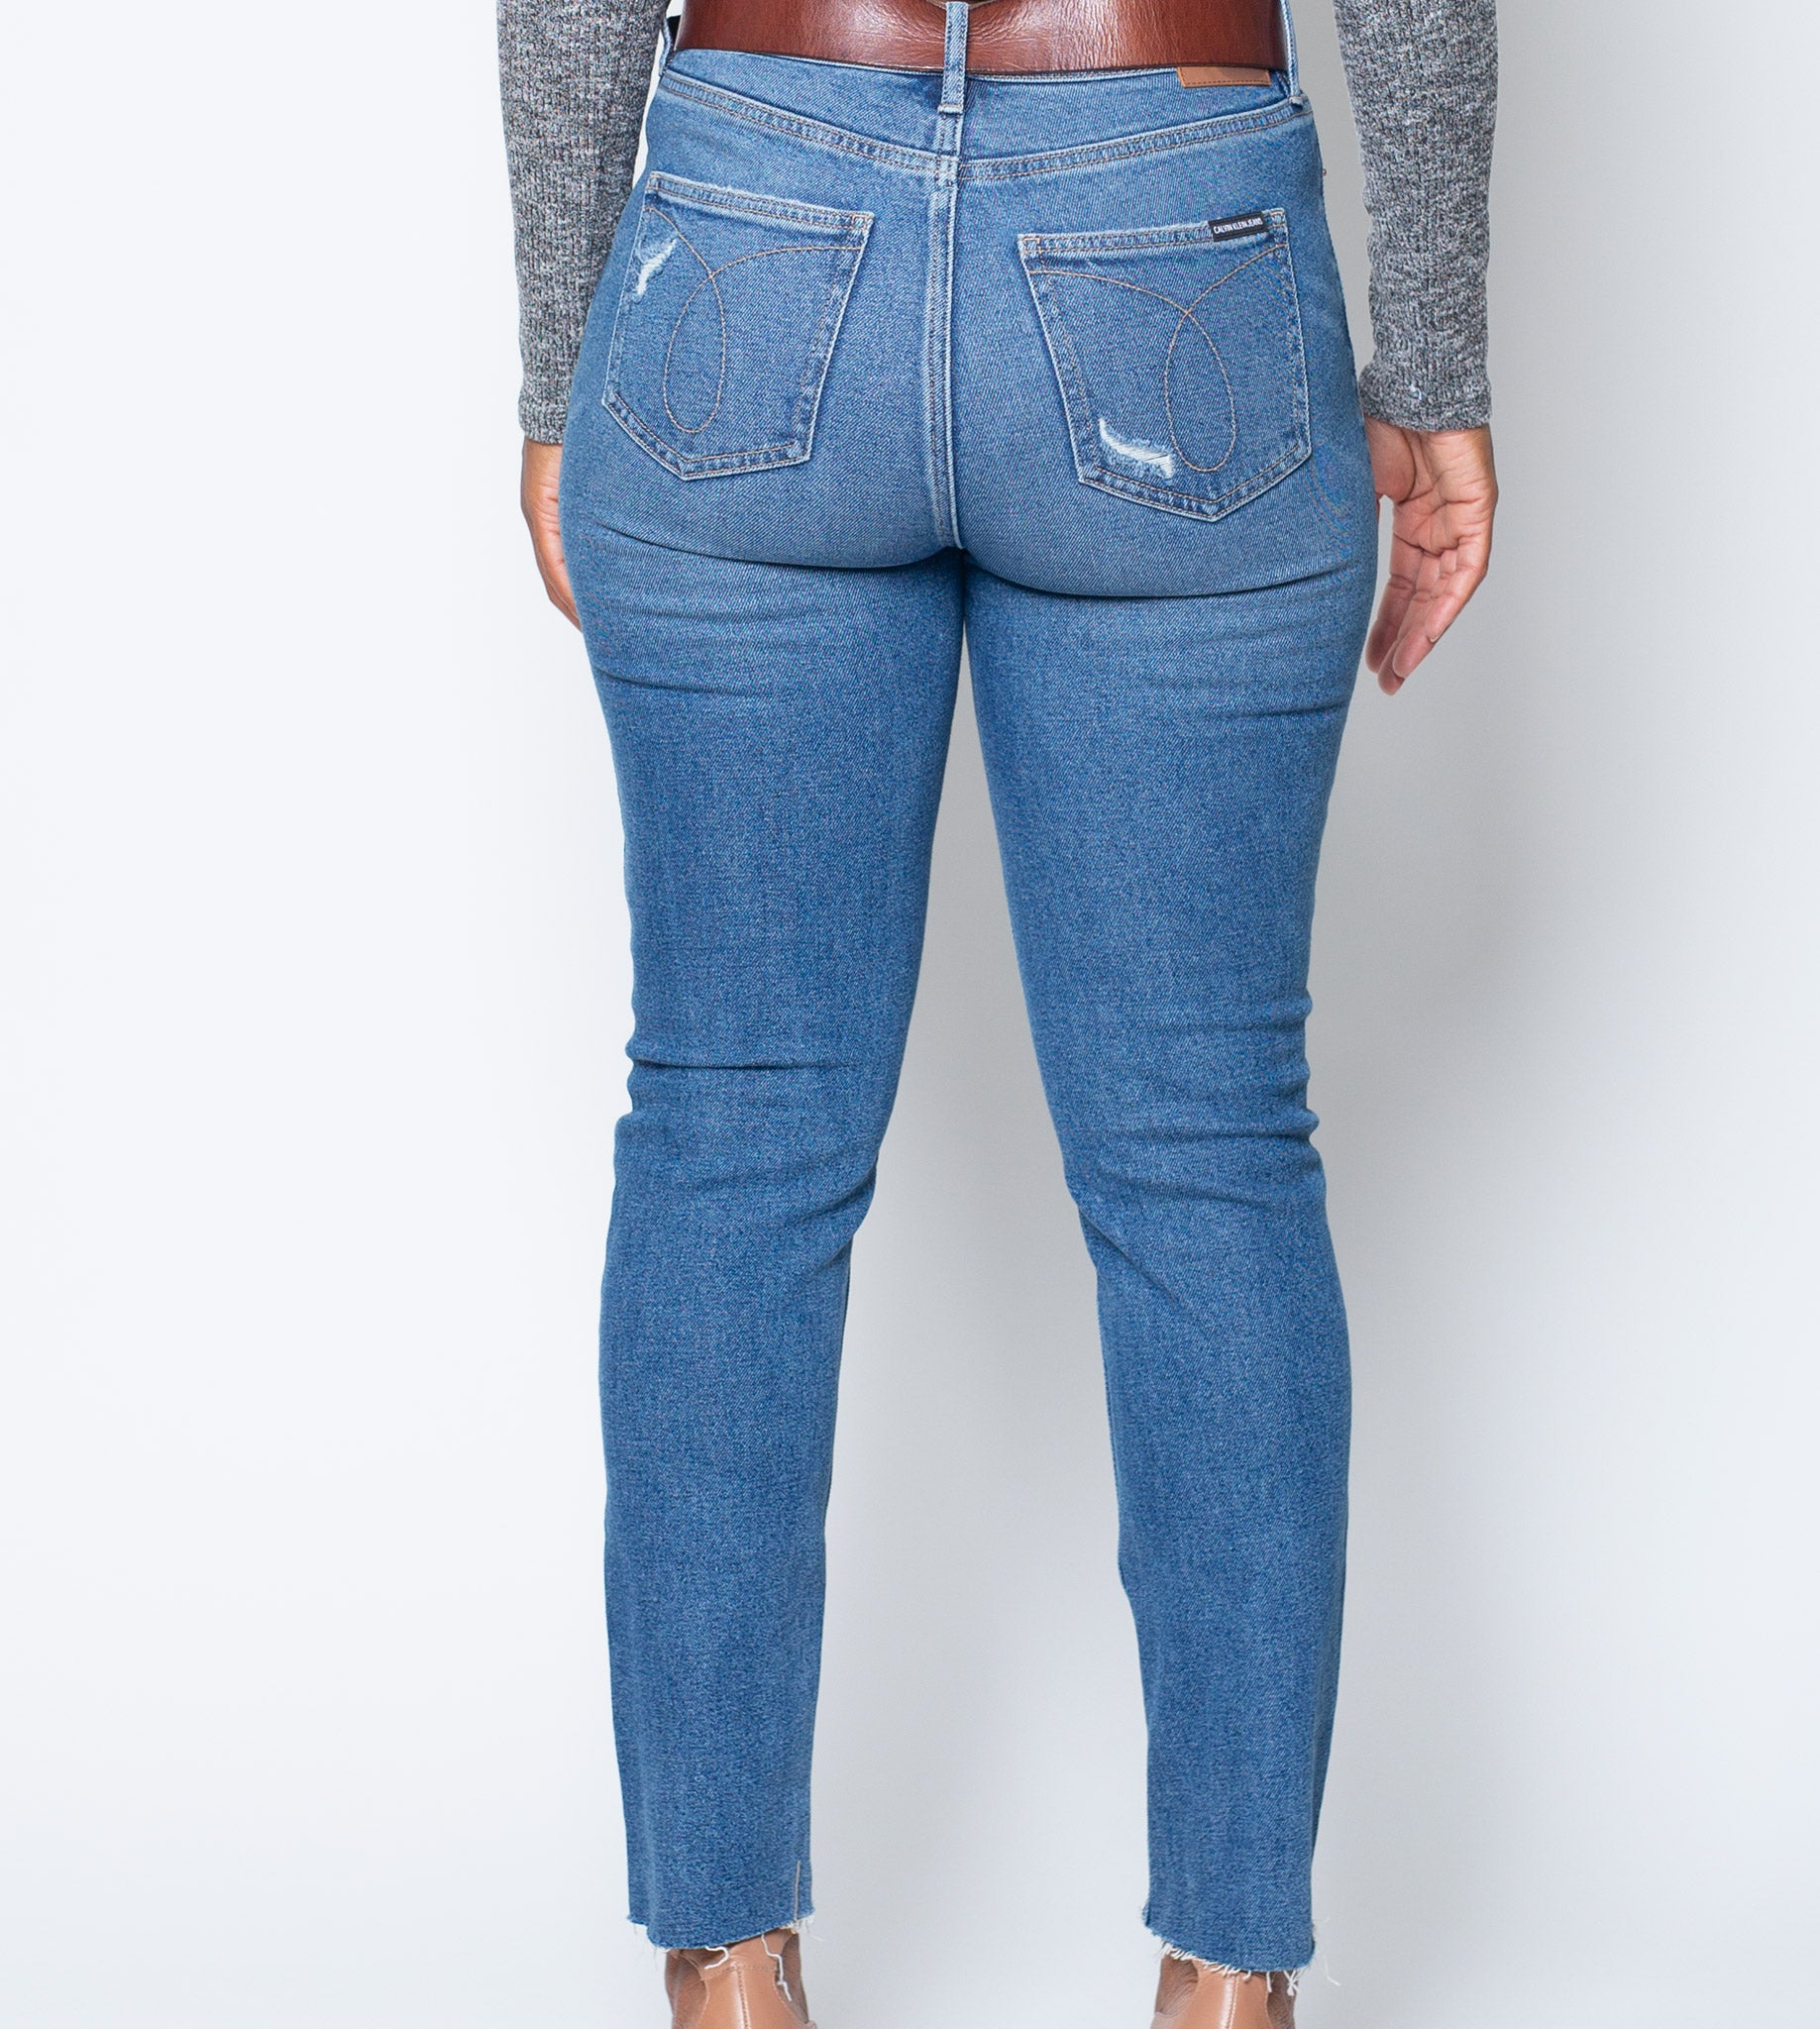 High Rise Ripped Jeans with Hem Cut